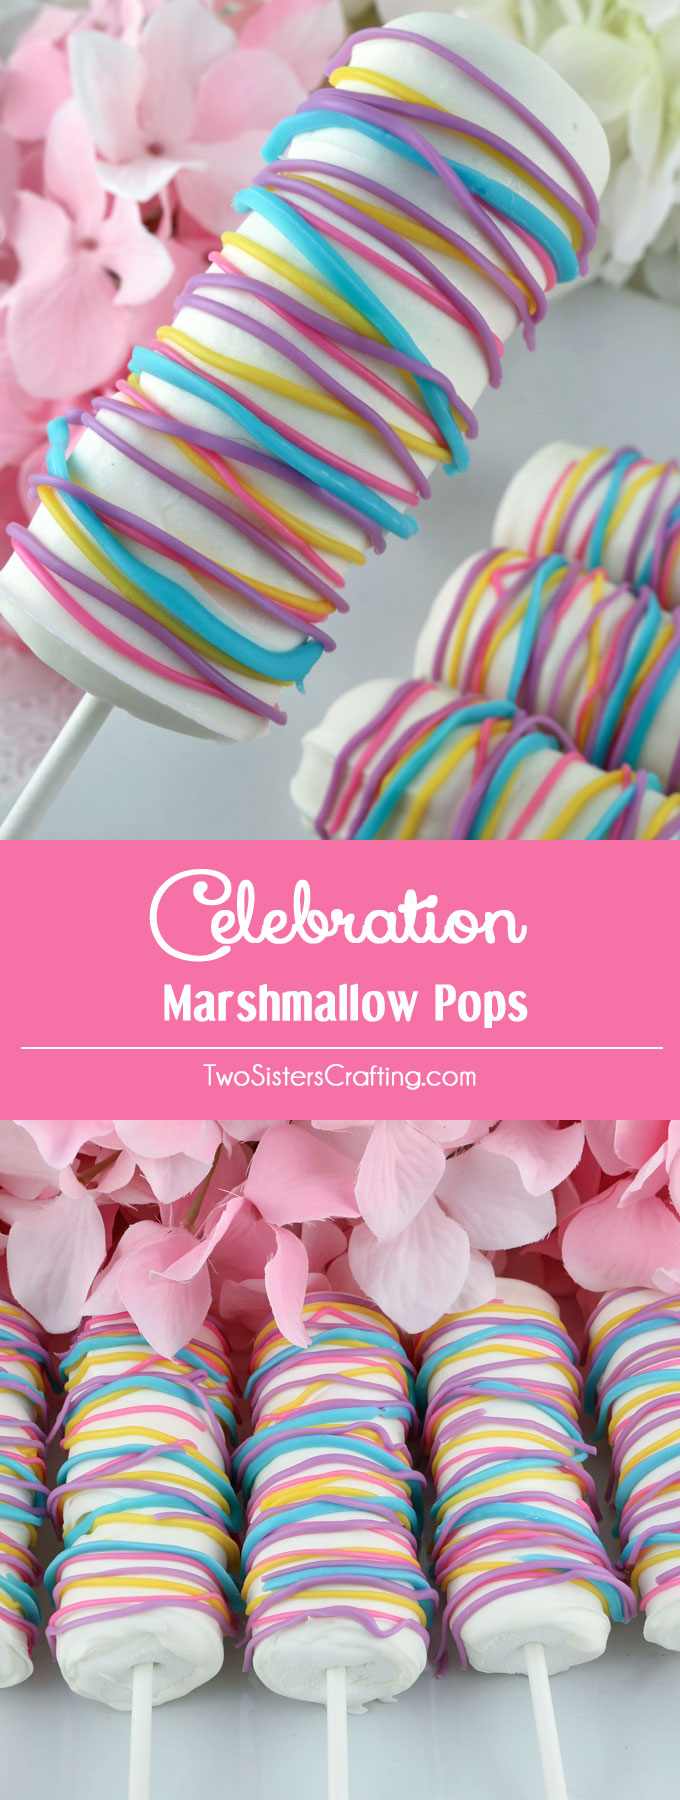 Celebration Marshmallow Pops Two Sisters